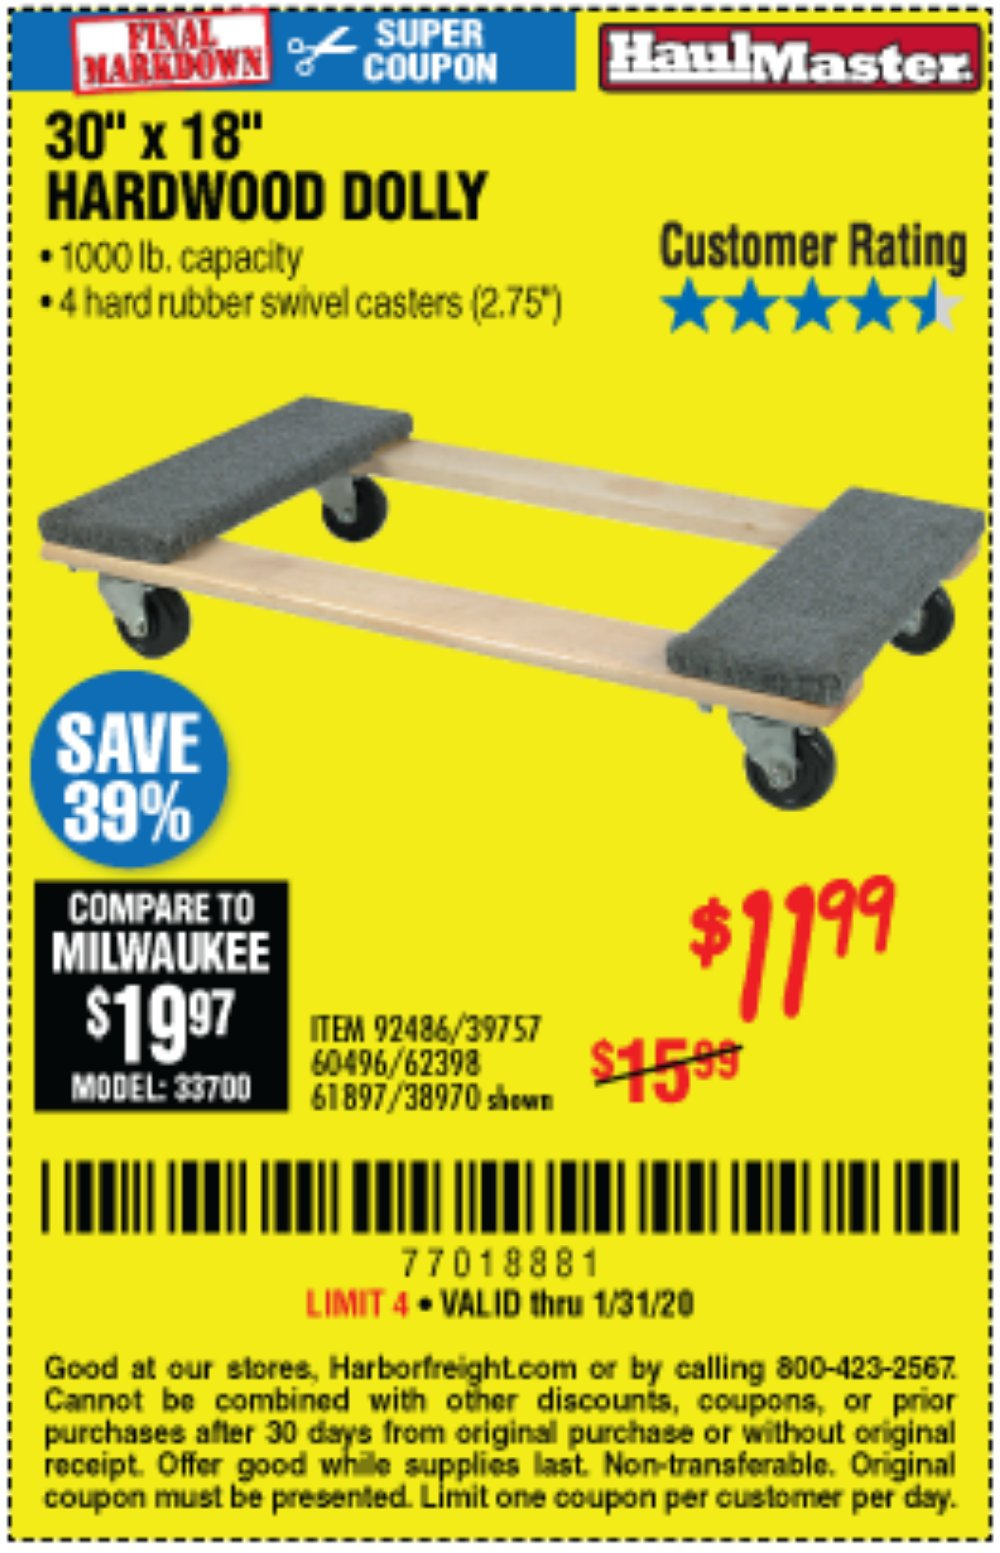 Harbor Freight Coupon, HF Coupons - 1000 Lb. Capacity Mover's Dolly